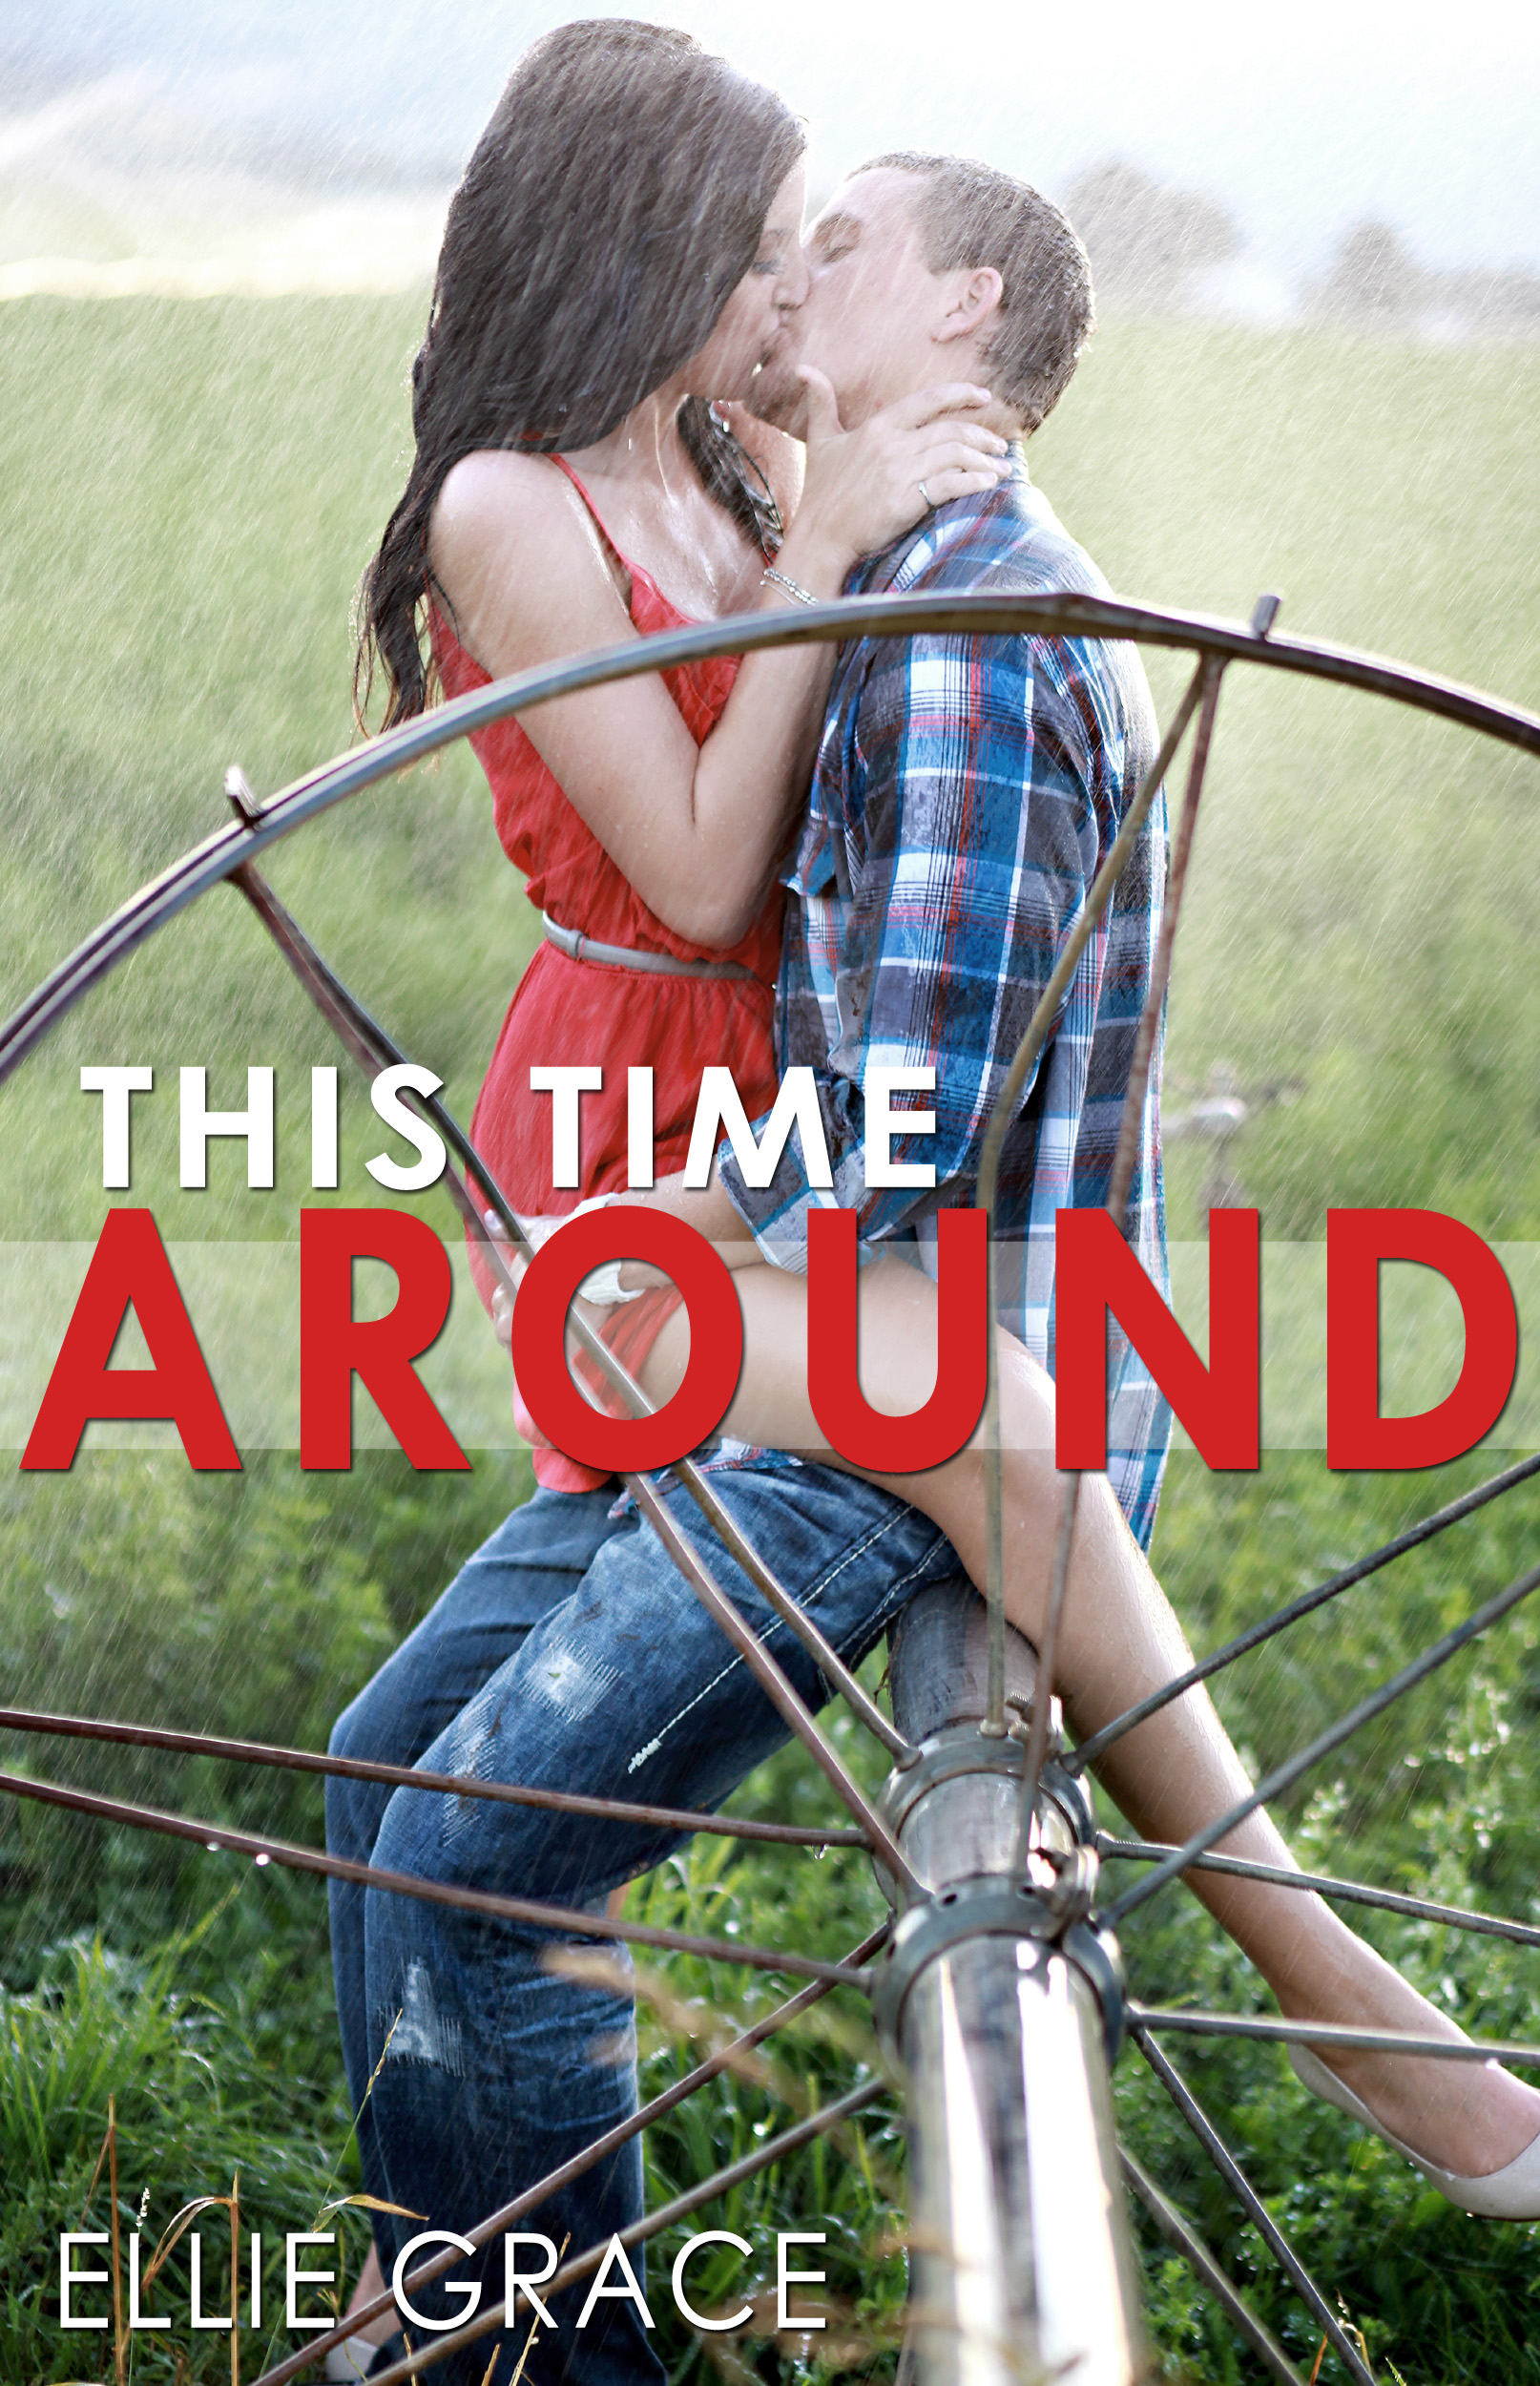 Sneak Peek: This Time Around by Ellie Grace